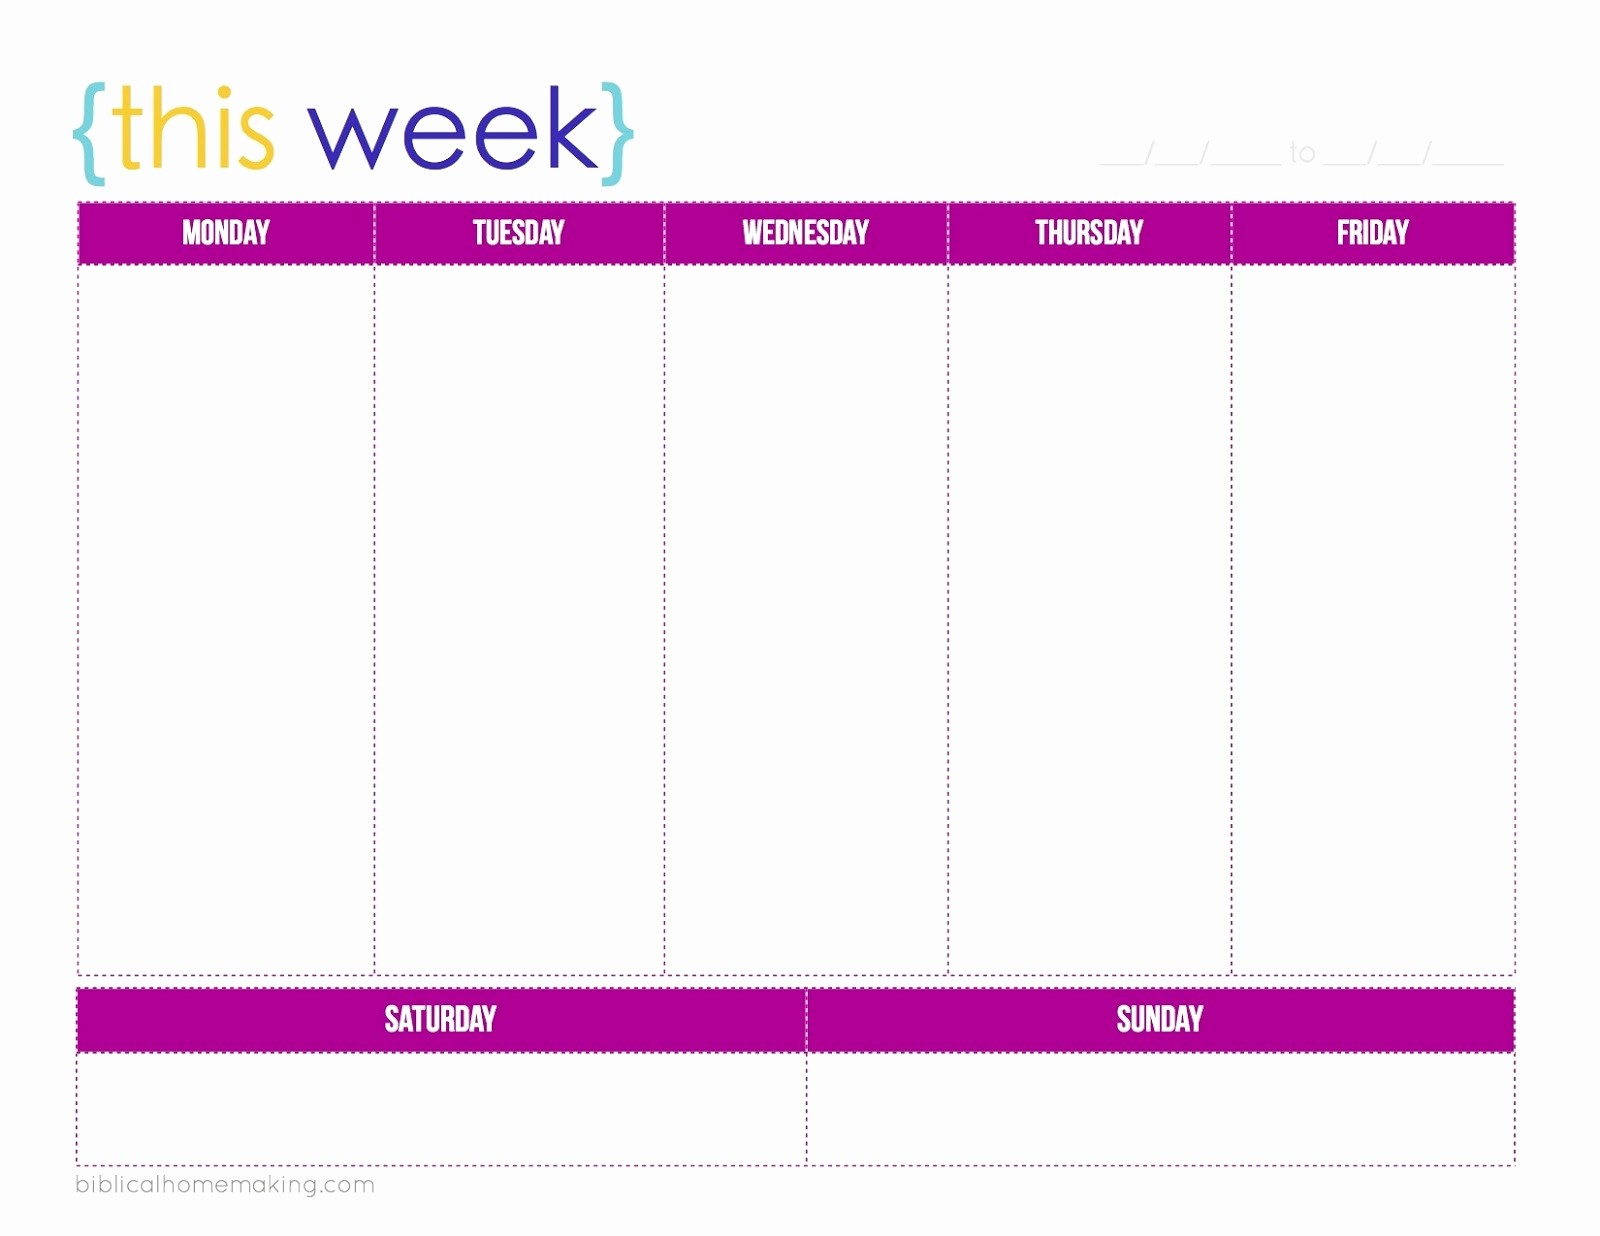 7 Day Week Calendar Template Lovely 7 Day Weekly Planner Template Printable